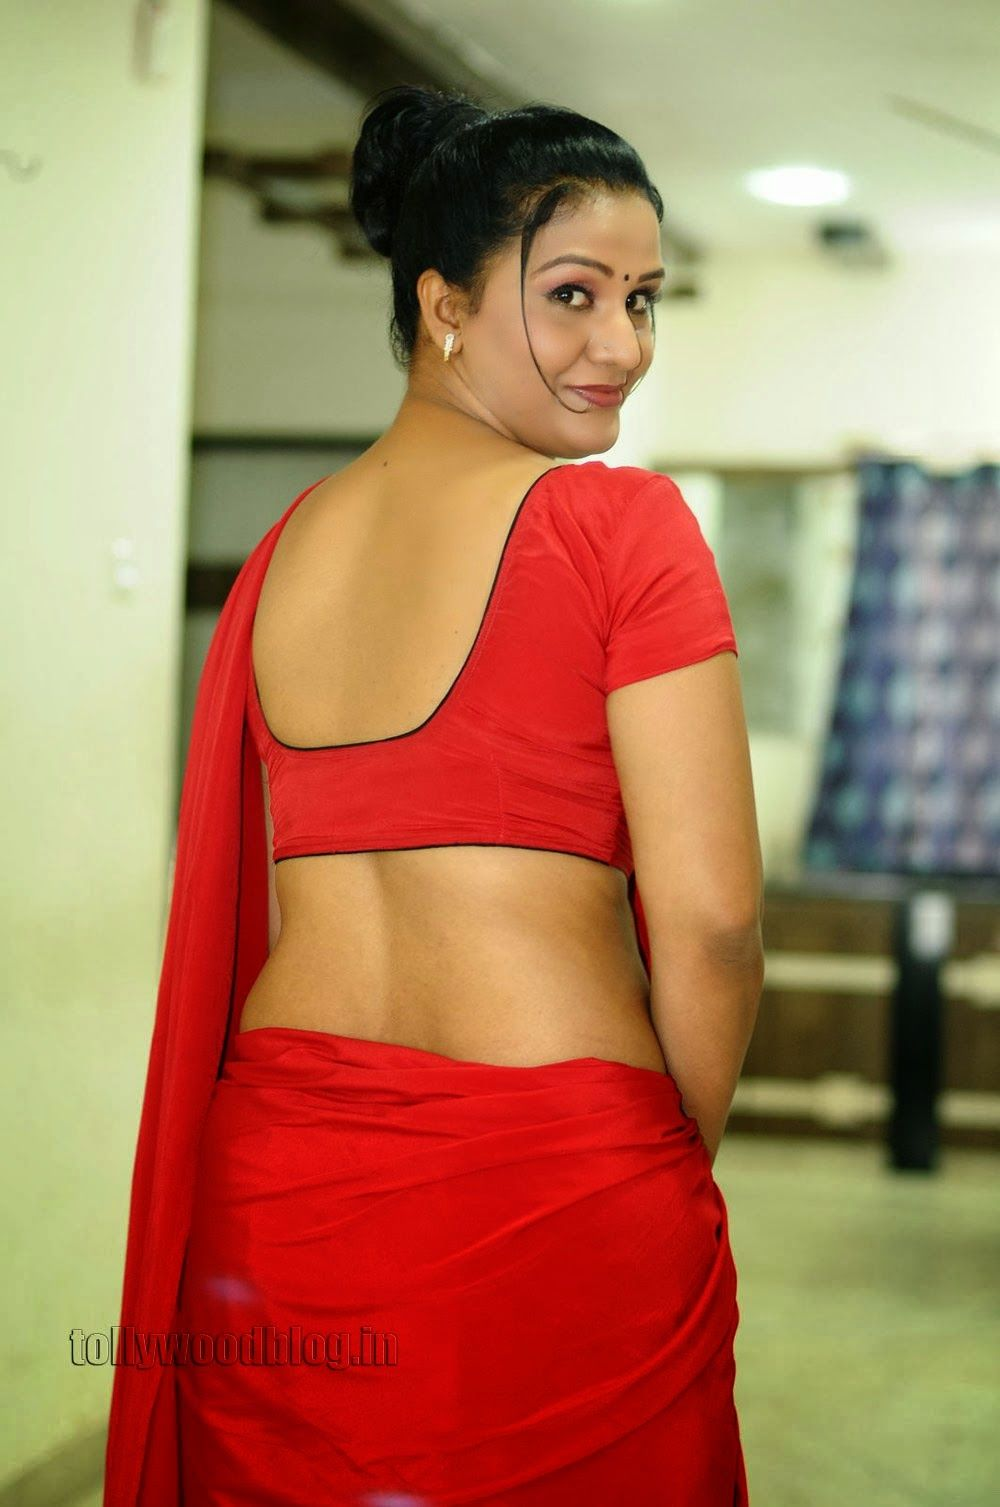 Indian married womens in nudr